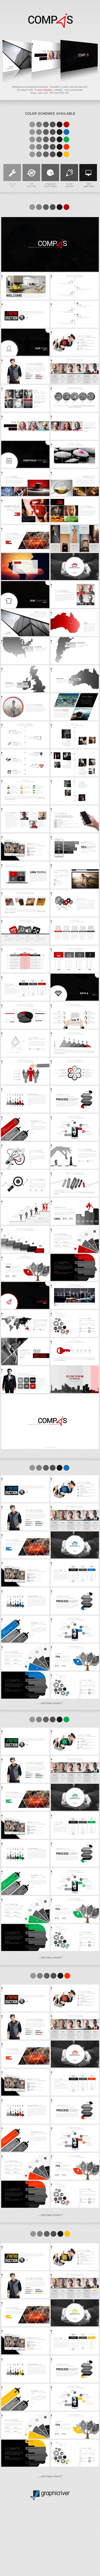 GraphicRiver Compas Powerpoint Template 20462930